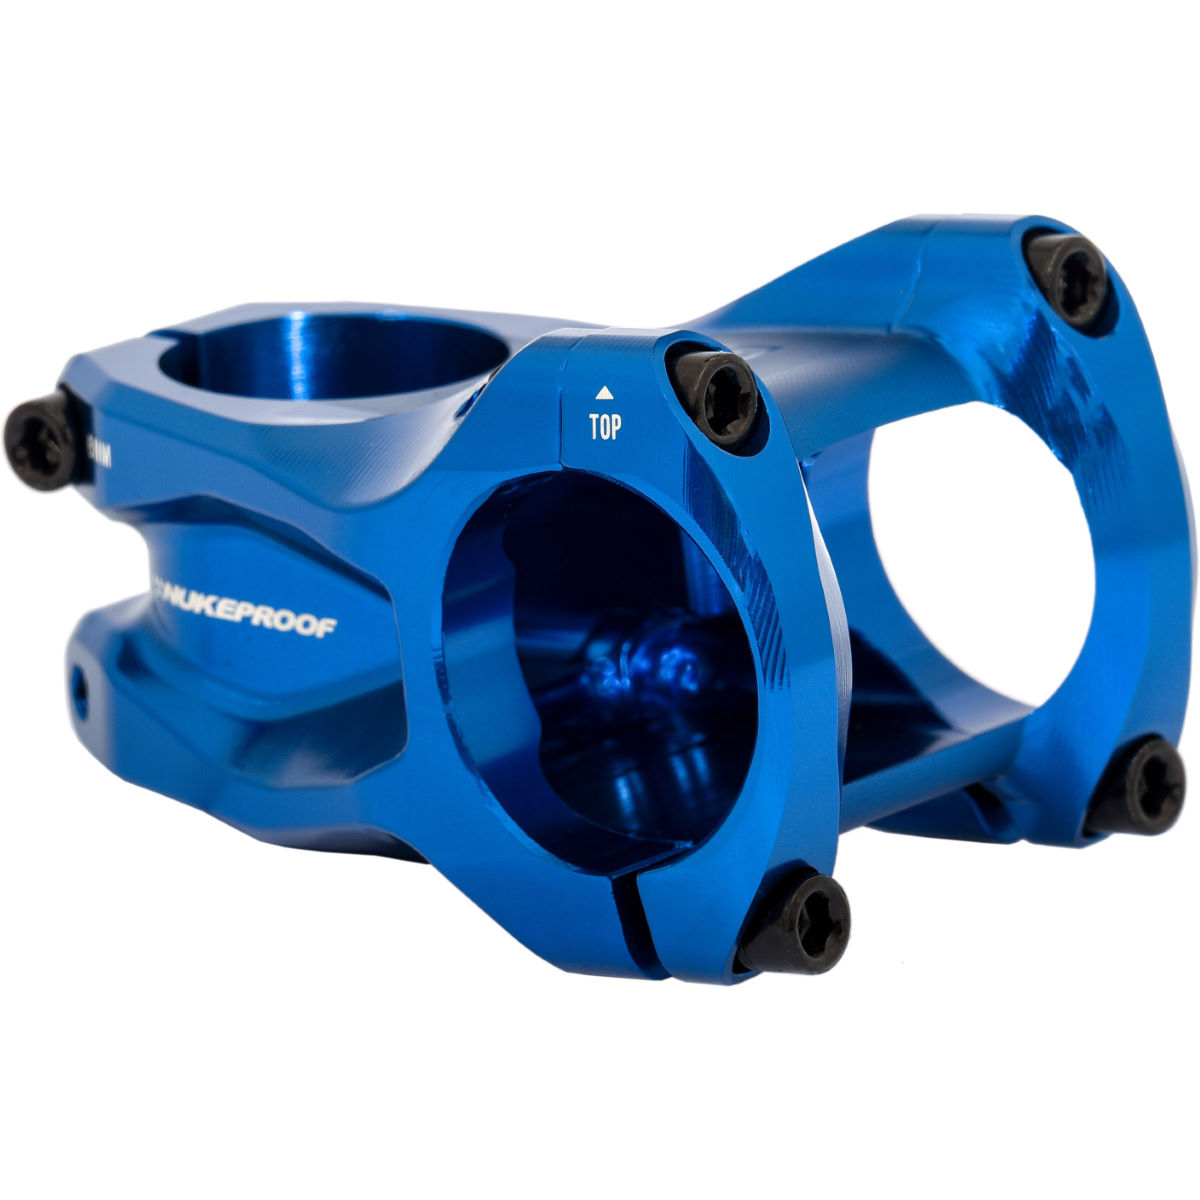 Potence Nukeproof Horizon - 35mm x 50mm Bleu Potences